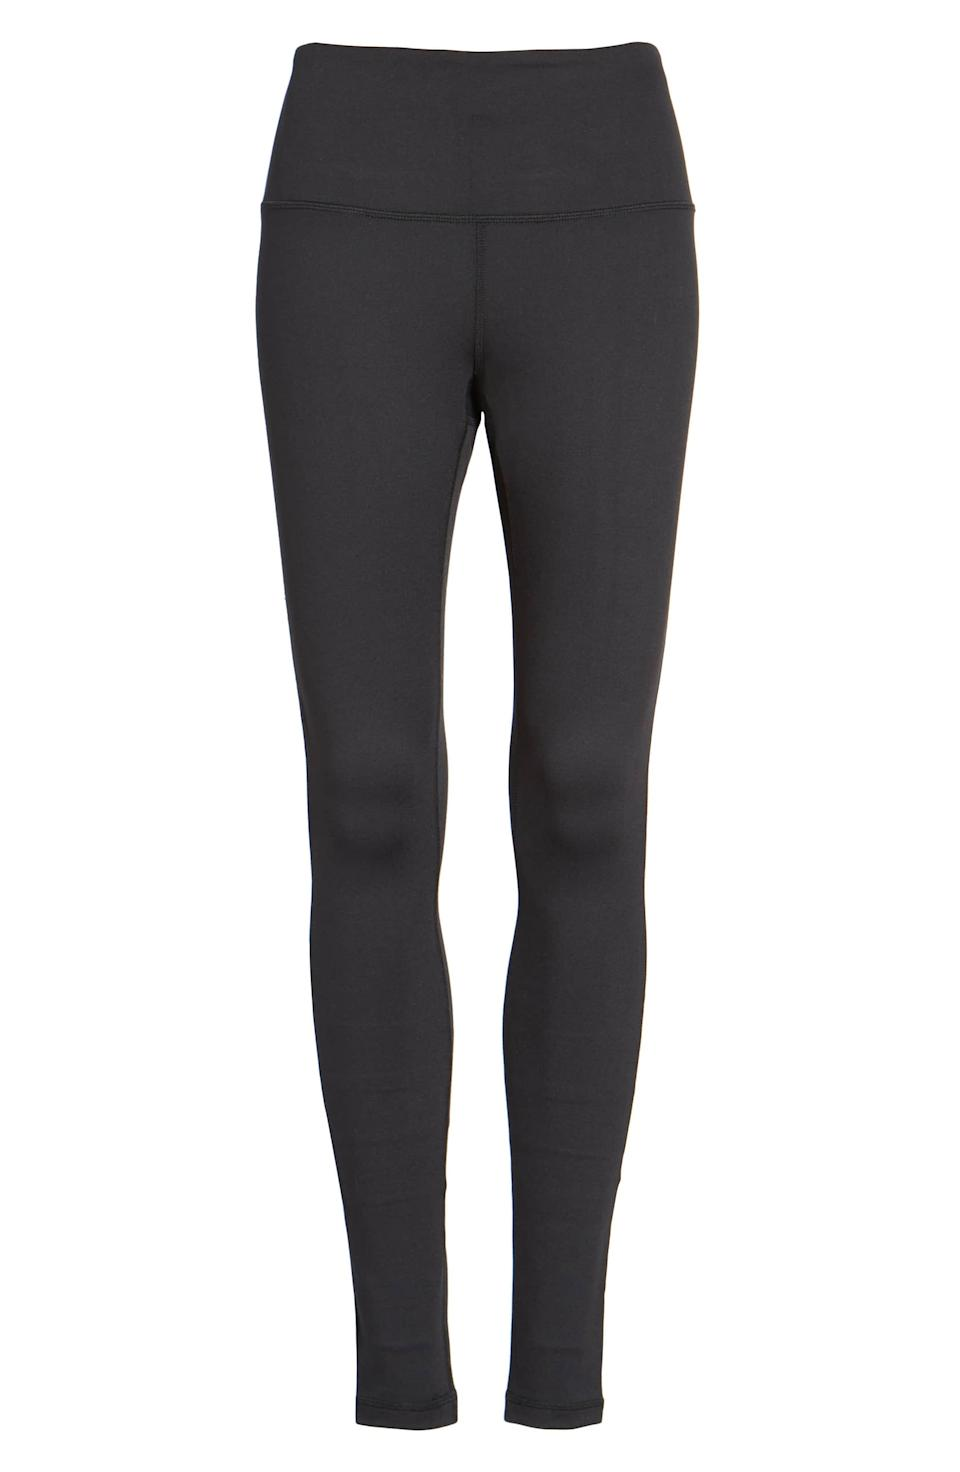 """<strong><h3>Zella: The Essential Legging</h3></strong> <br>Few legging brands see as much public praise as Zella. The Live In high-waist leggings tout moisture-wicking technology great for running at the gym or running errands.<br><br><strong>The hype:</strong> 4.7 out of 5 stars and 6,286 reviews on Nordstrom<br><br><strong>What they're saying:</strong> """"These leggings really live up to their """"live in"""" name. They are so comfortable, I didn't want to take them off! (I actually wore them two days in a row.) The material is super buttery soft and thicker so you don't have to worry about underwear showing through. Also, the little pocket in the front is perfect for keys, smaller phones (no Iphone7 plus), cash—basically anything you don't want to/can't carry. I have heard complaints about them being too hot, but I have worn them in 90+ degree weather and didn't feel like they were uncomfortable or unbearably hot. They are super durable and I am sure they will last me a long time."""" - BRD975, Nordstrom Review<br><br><strong>Zella</strong> Live In High Waist Leggings, $, available at <a href=""""https://shop.nordstrom.com/s/zella-live-in-high-waist-leggings/4312529/full"""" rel=""""nofollow noopener"""" target=""""_blank"""" data-ylk=""""slk:Nordstrom"""" class=""""link rapid-noclick-resp"""">Nordstrom</a><br><br><br><br><br>"""